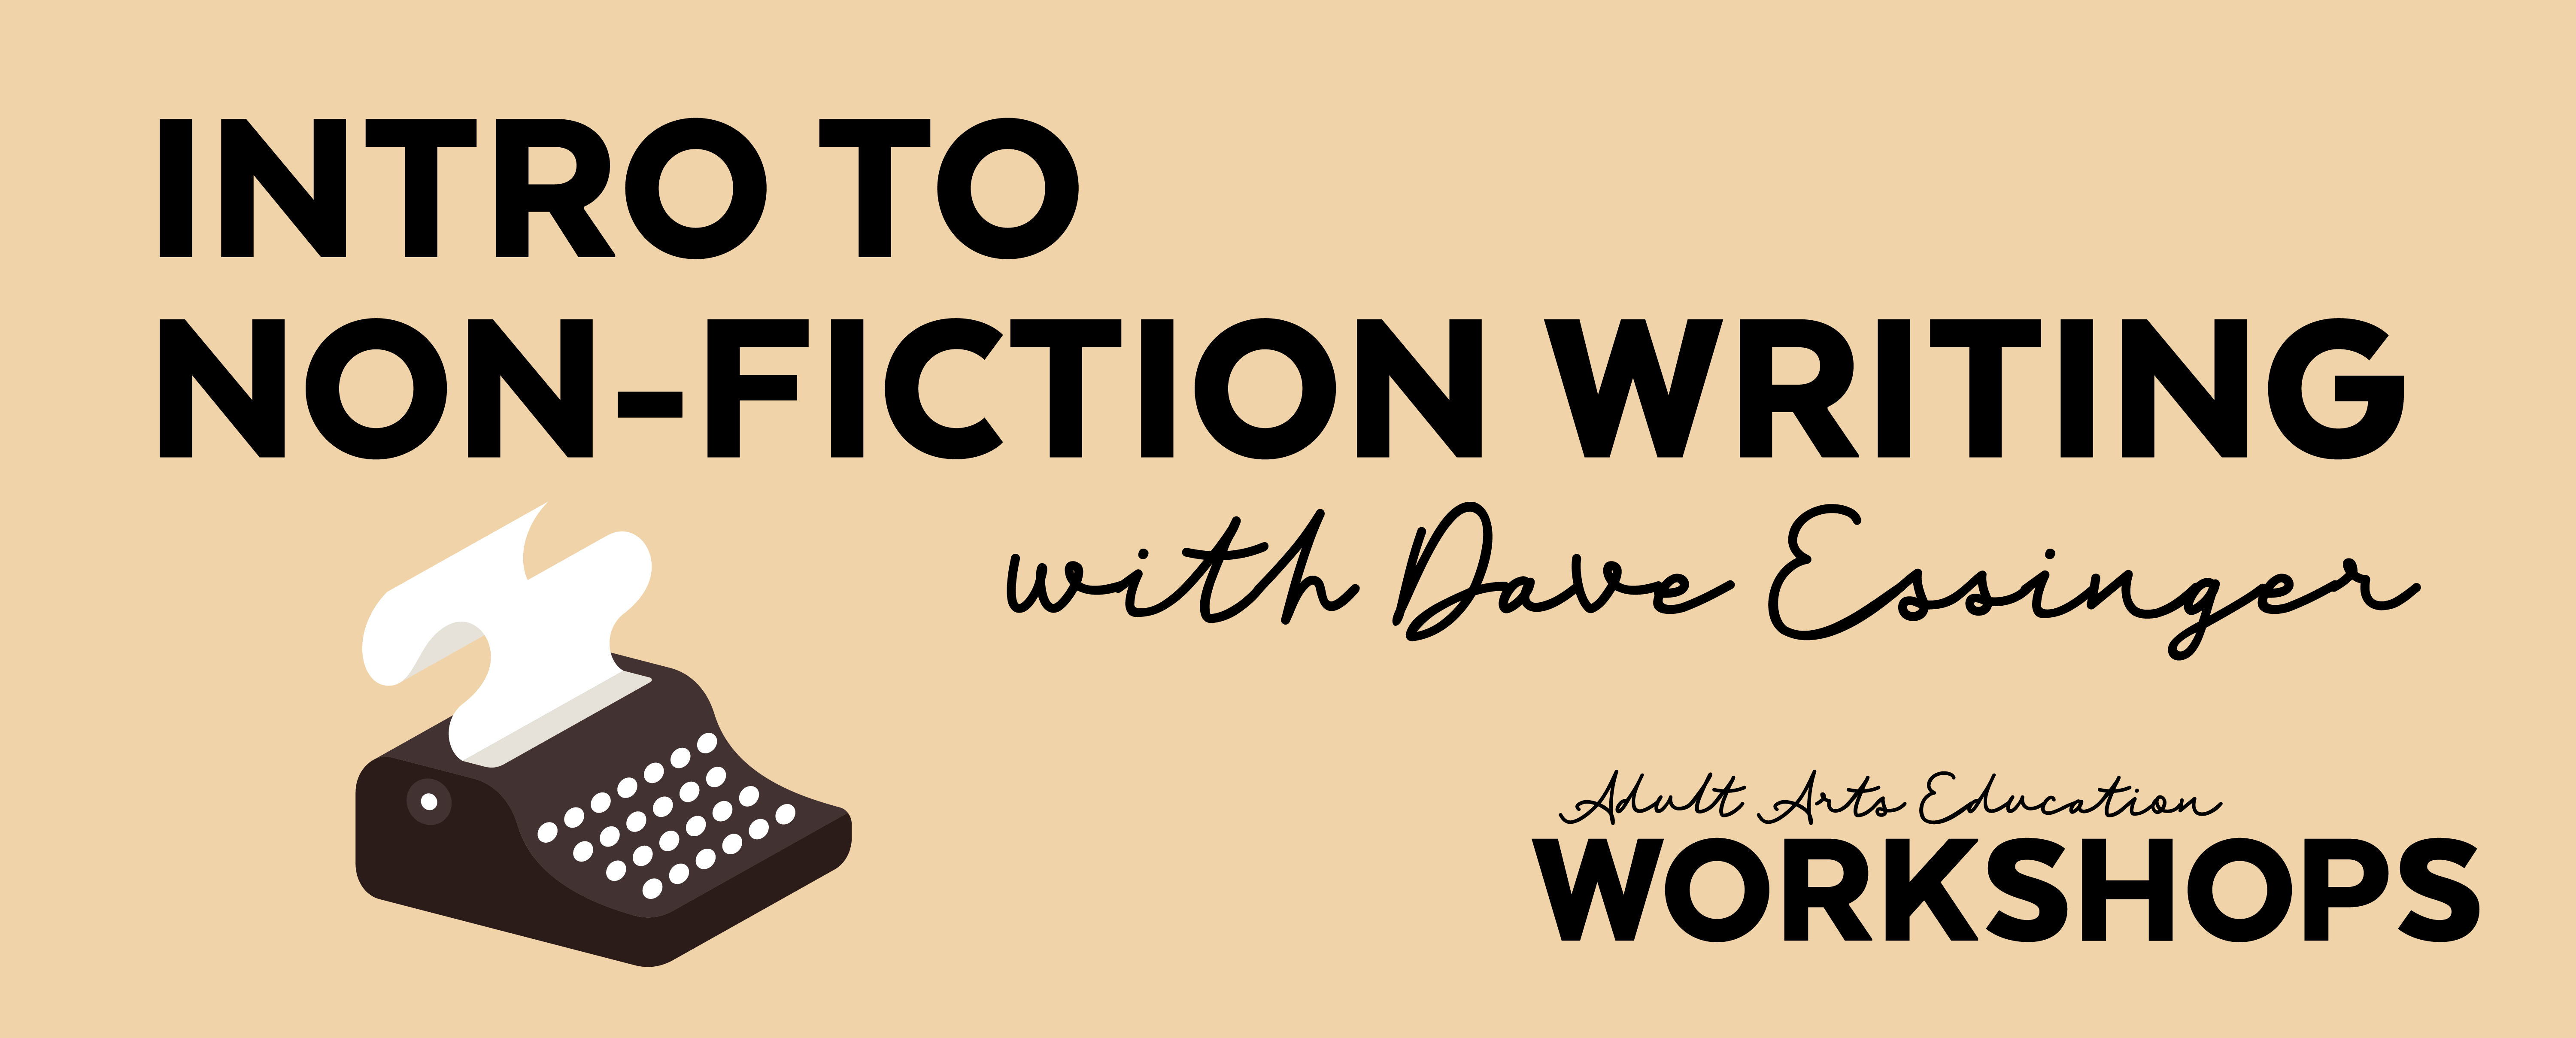 Intro to Non-Fiction Writing with Dave Essinger